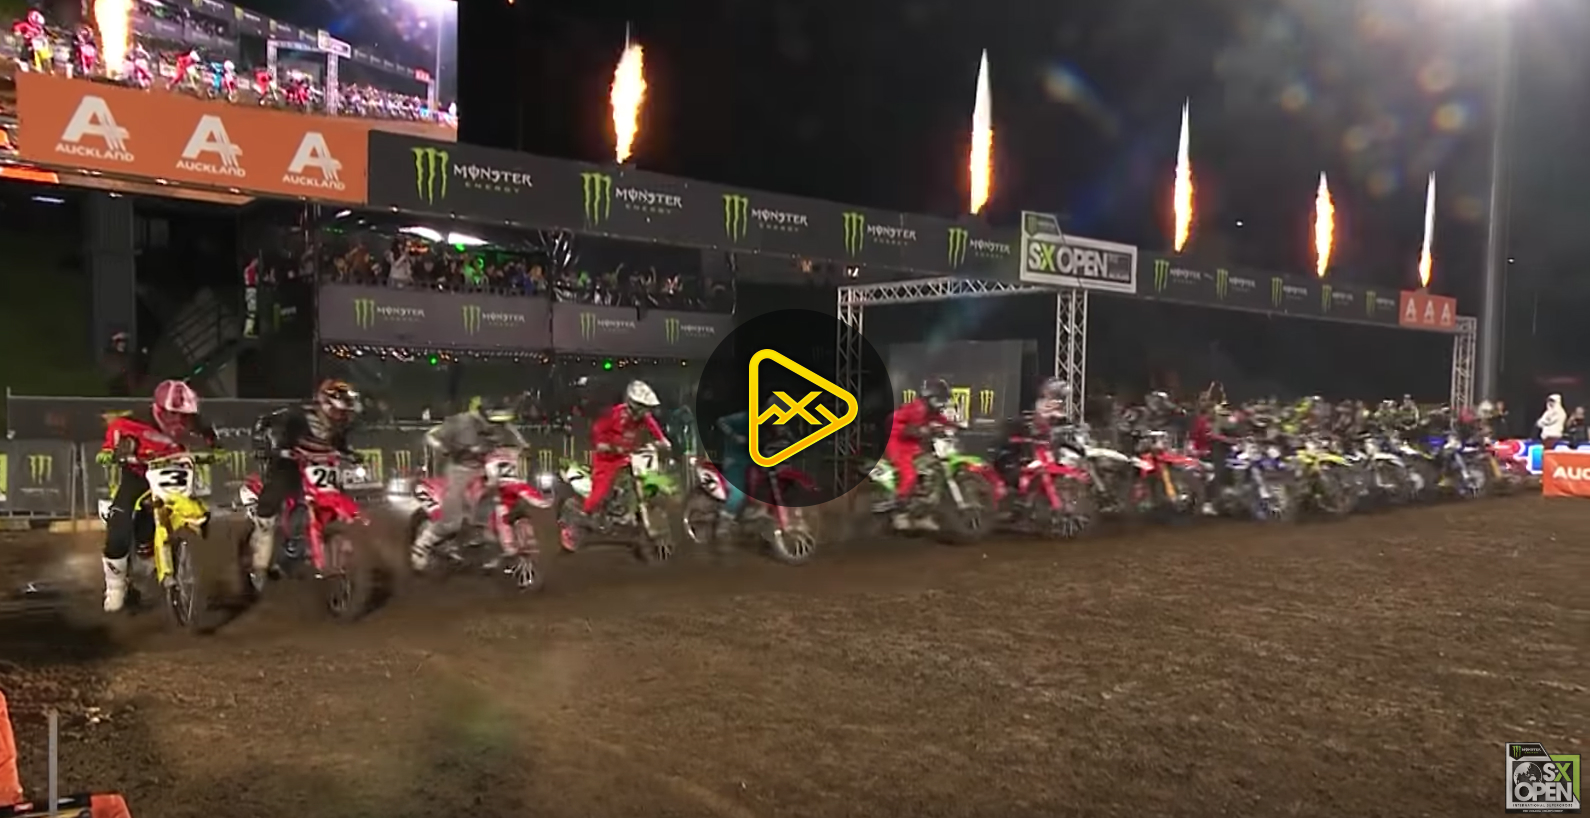 Highlights – SX1 at 2019 Monster S-X Open Auckland